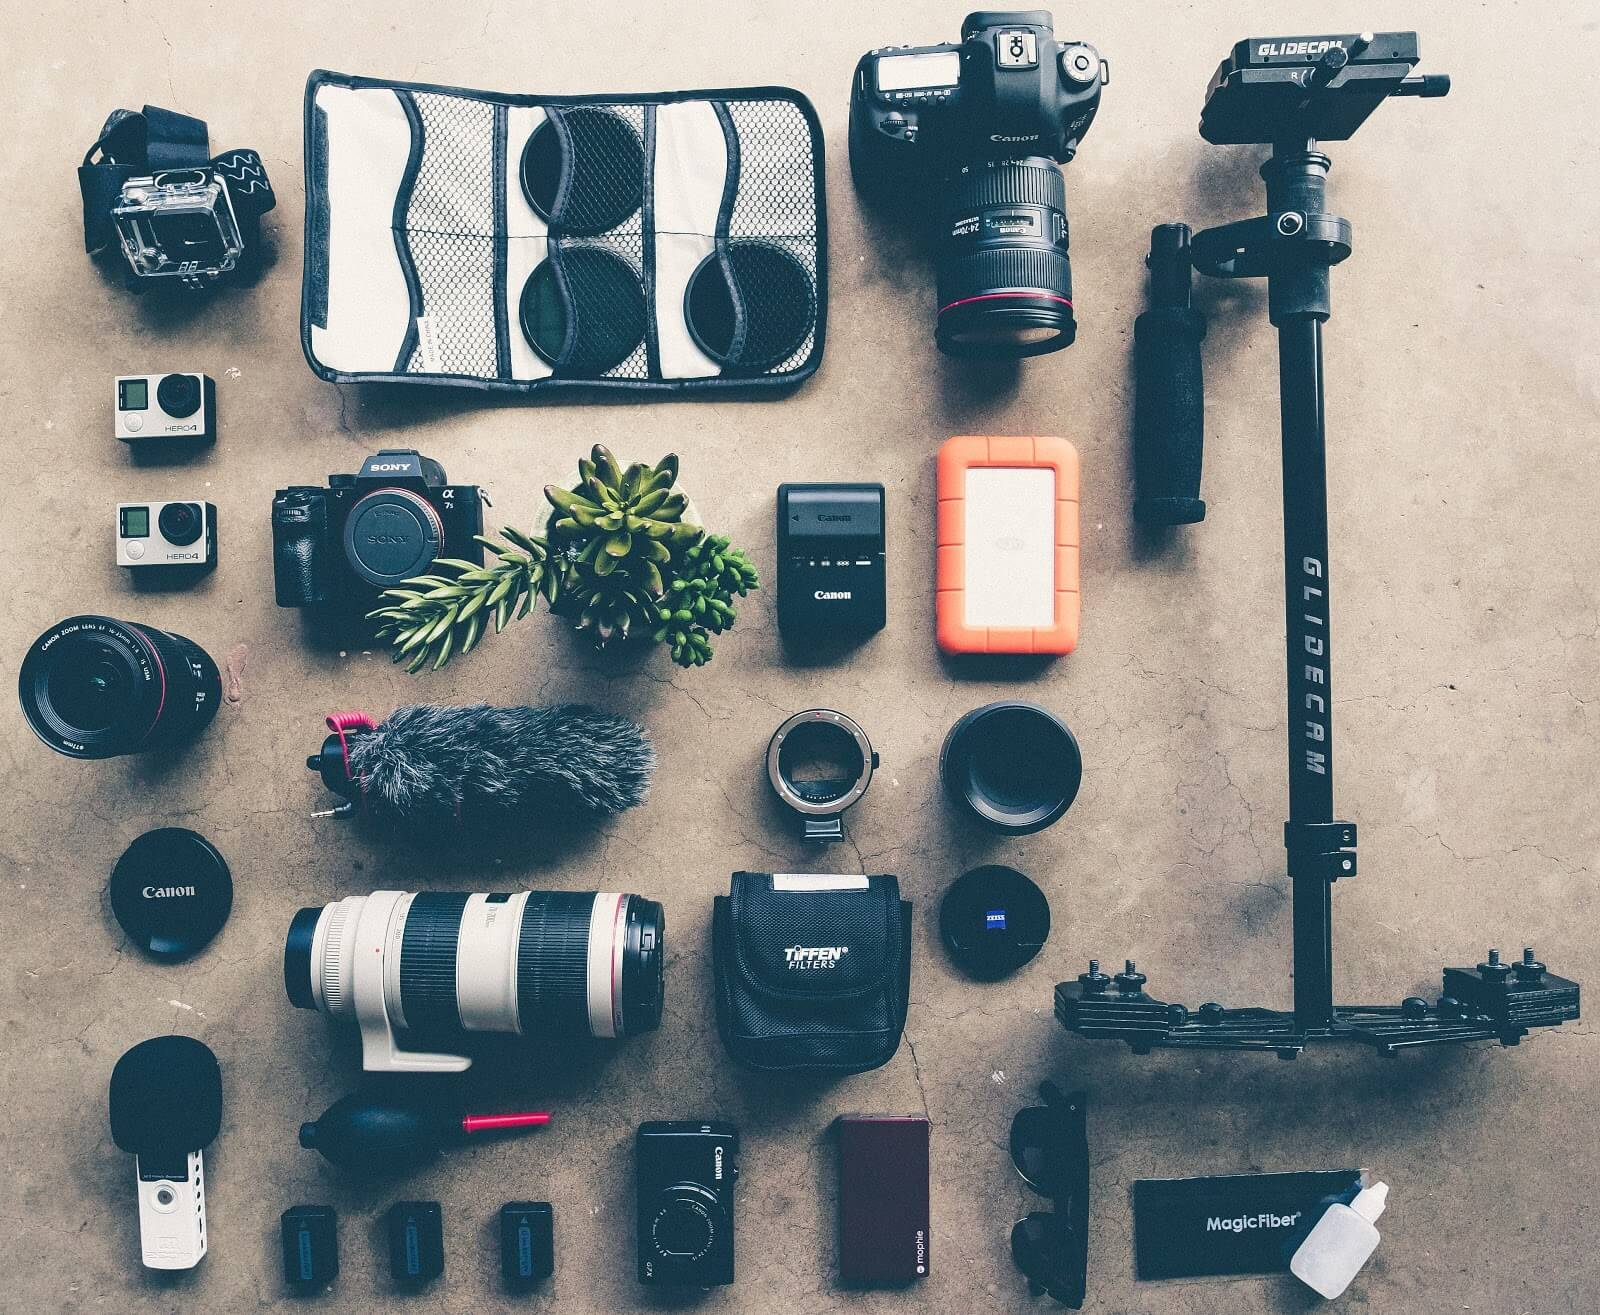 How to become a photographer: a lot of camera equipment laid out